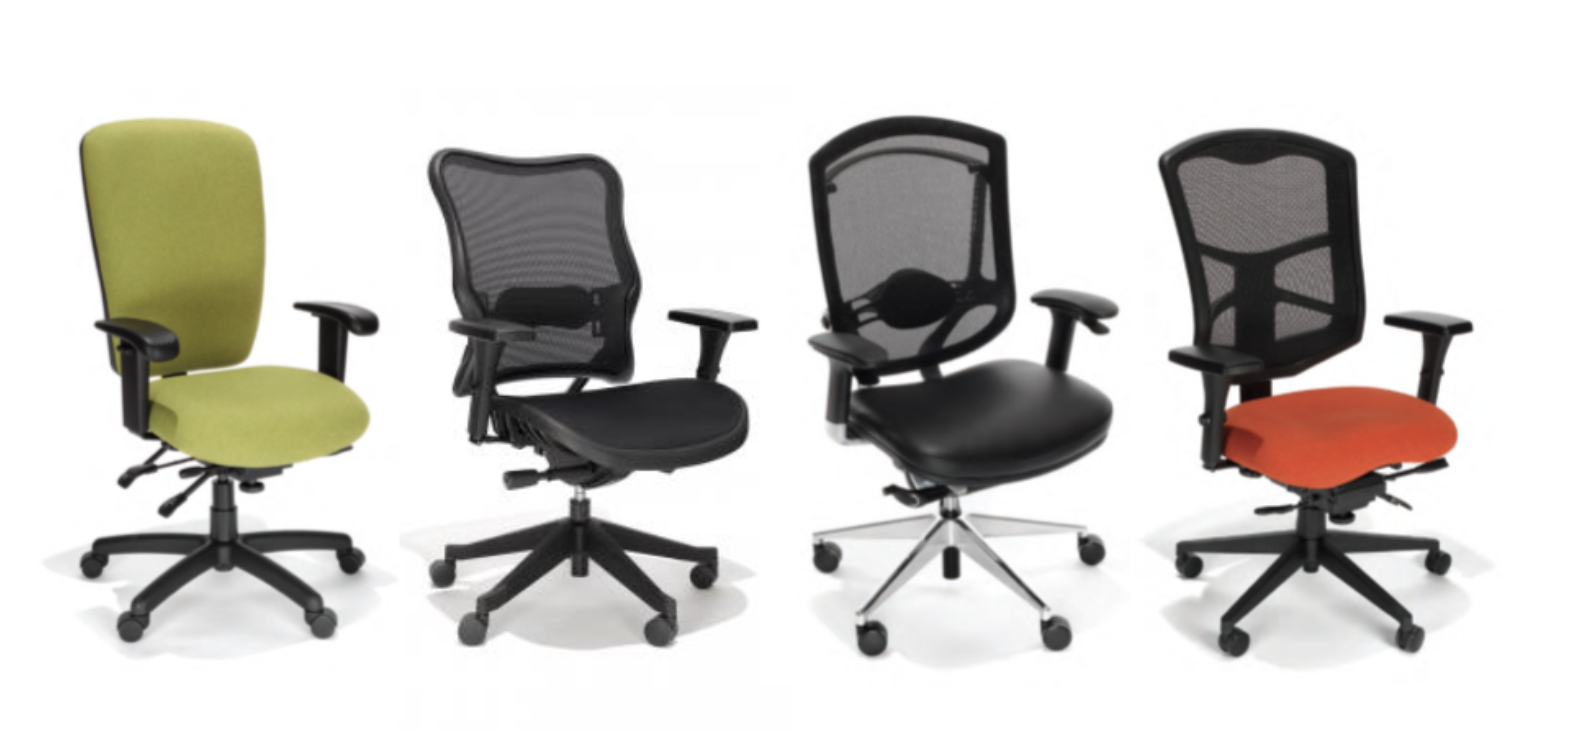 RFM Chairs Variety